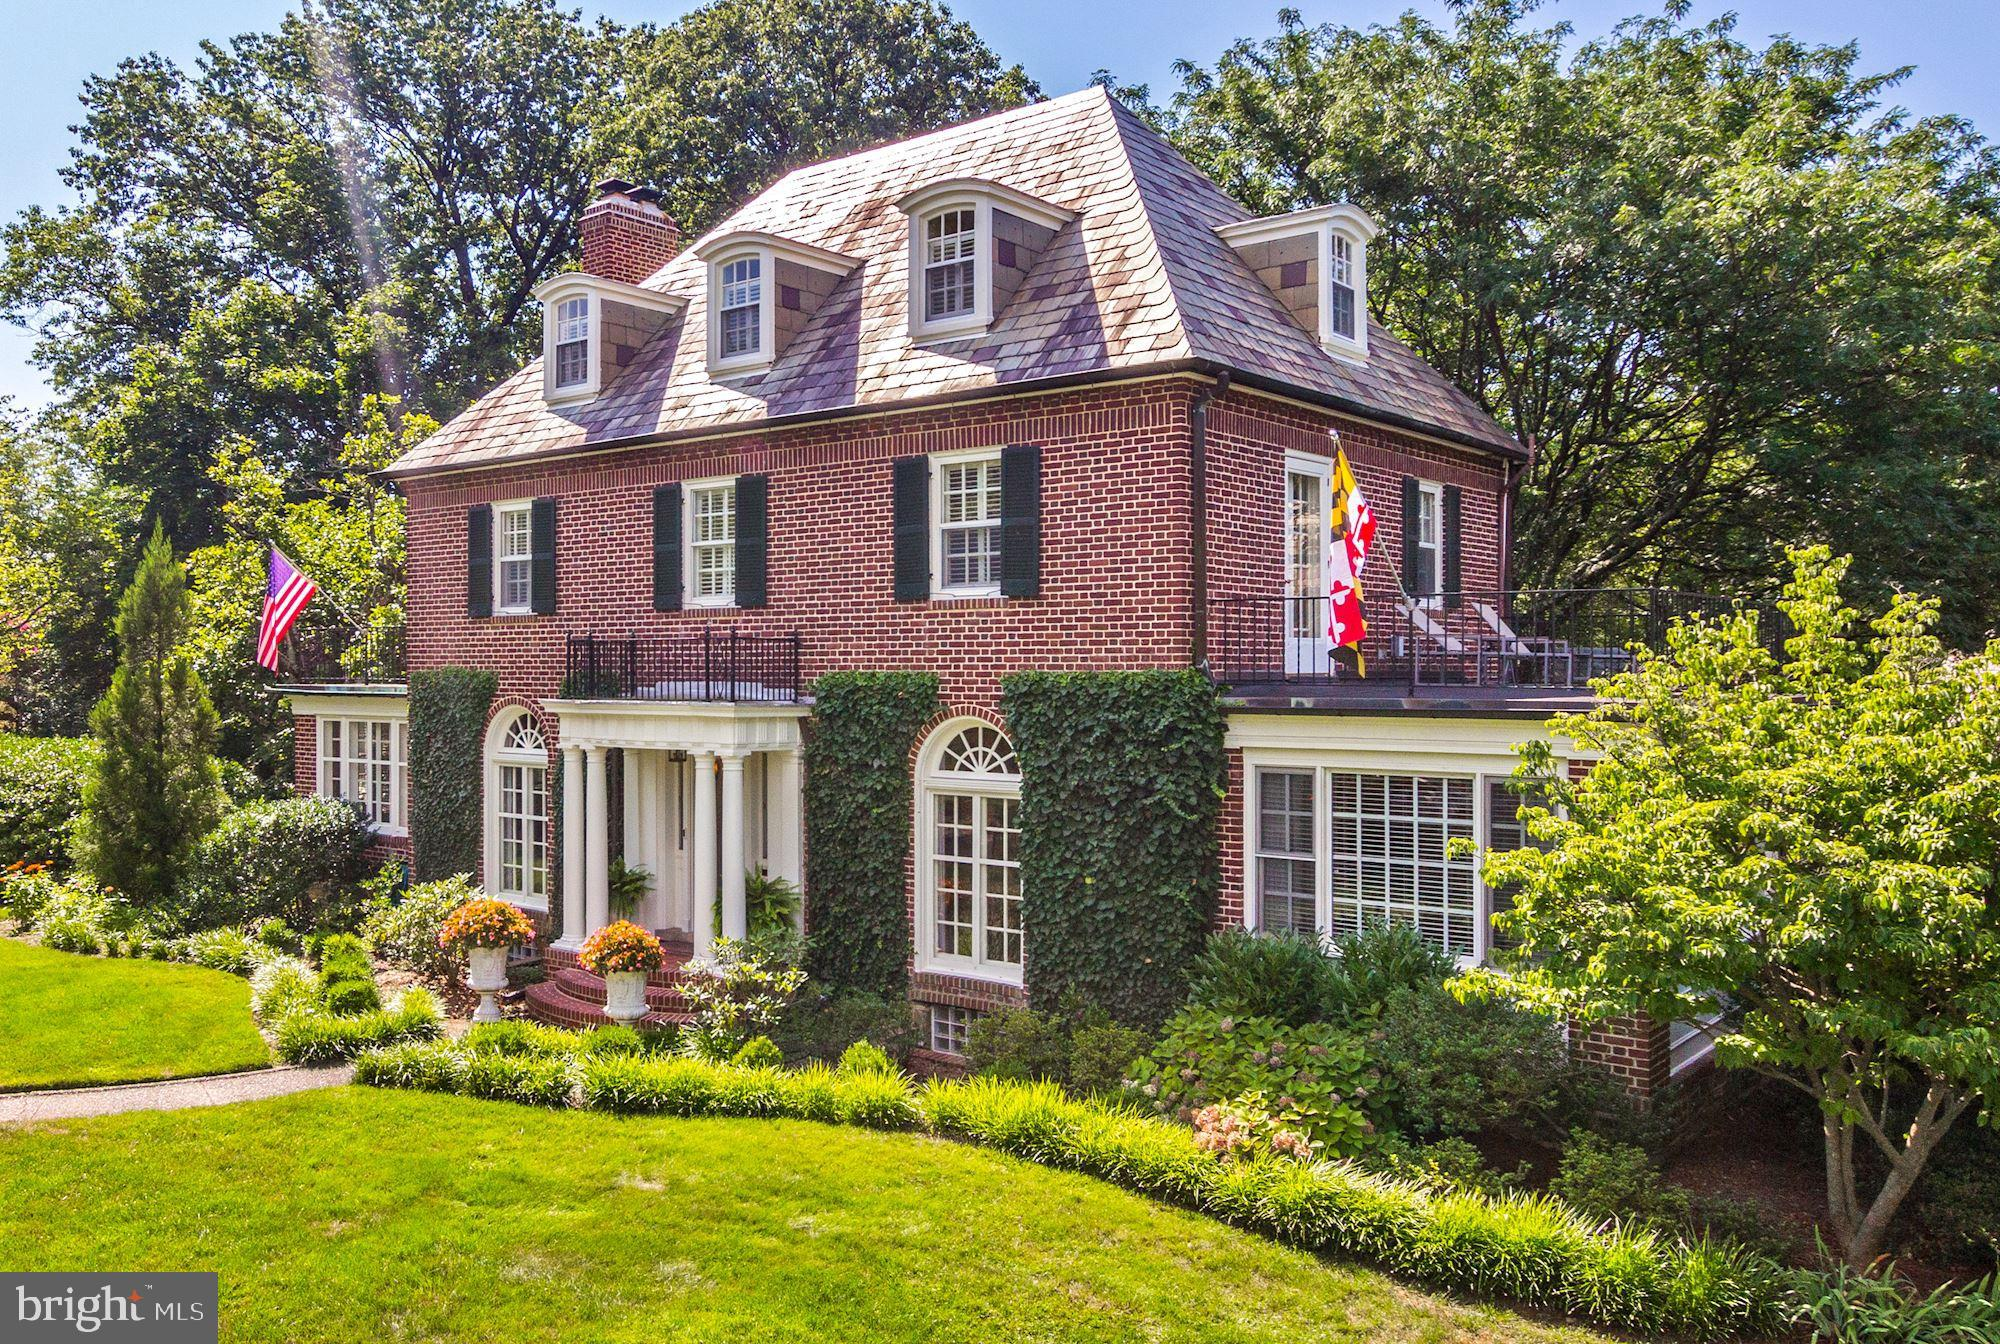 9 CHARLCOTE PLACE, BALTIMORE, MD 21218